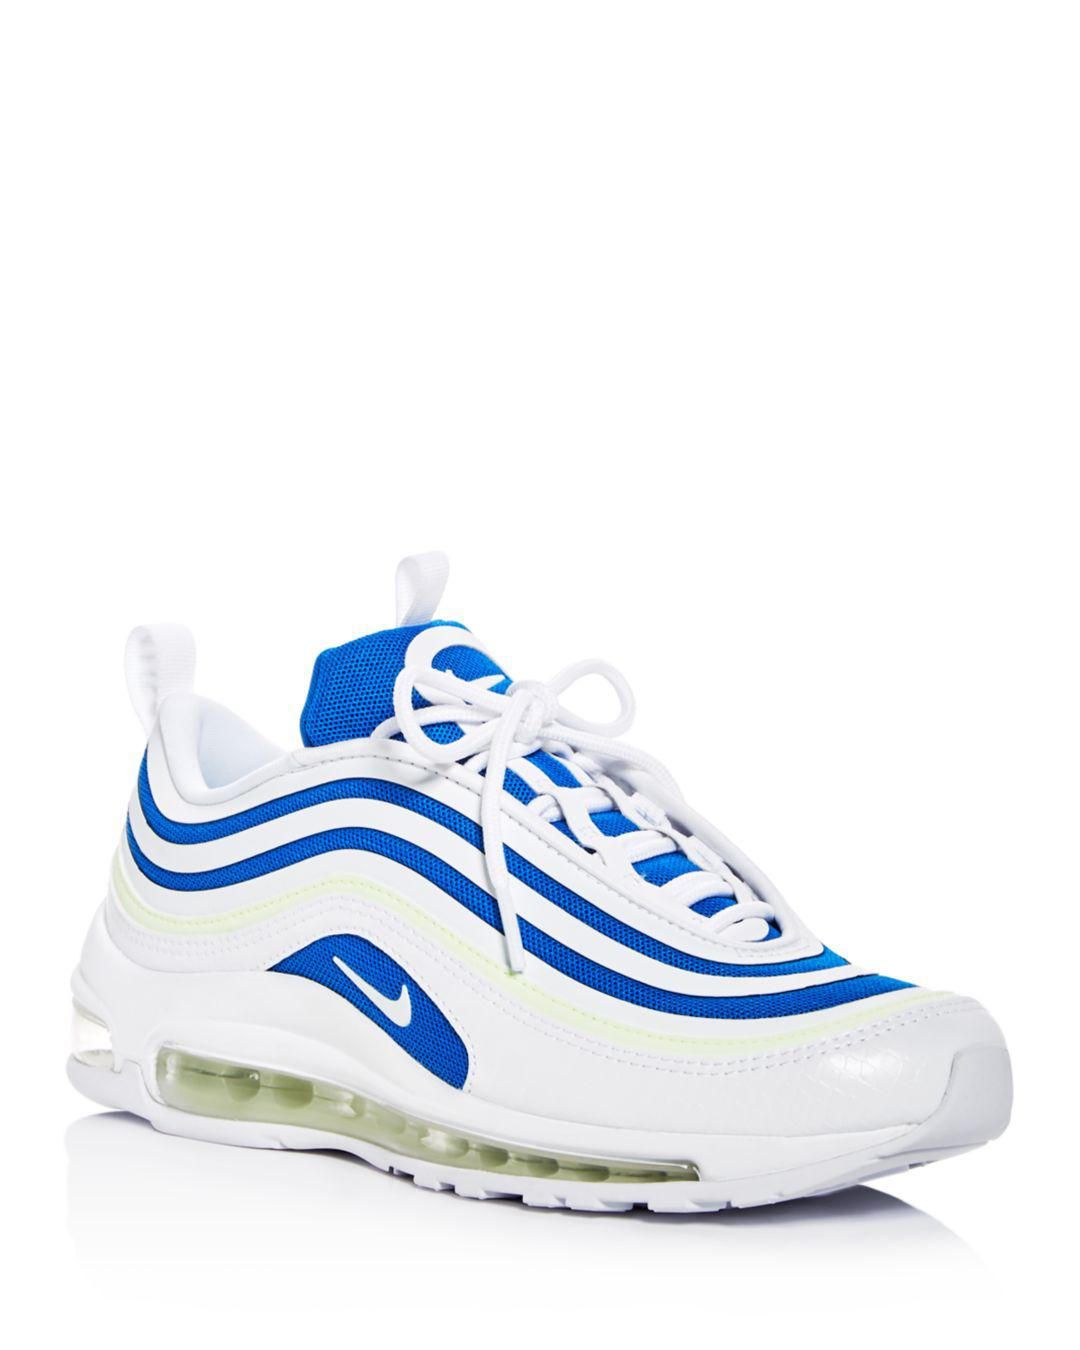 Nike Women's Air Max 97 Ultra '17 Se Lace Up Sneakers in White ...